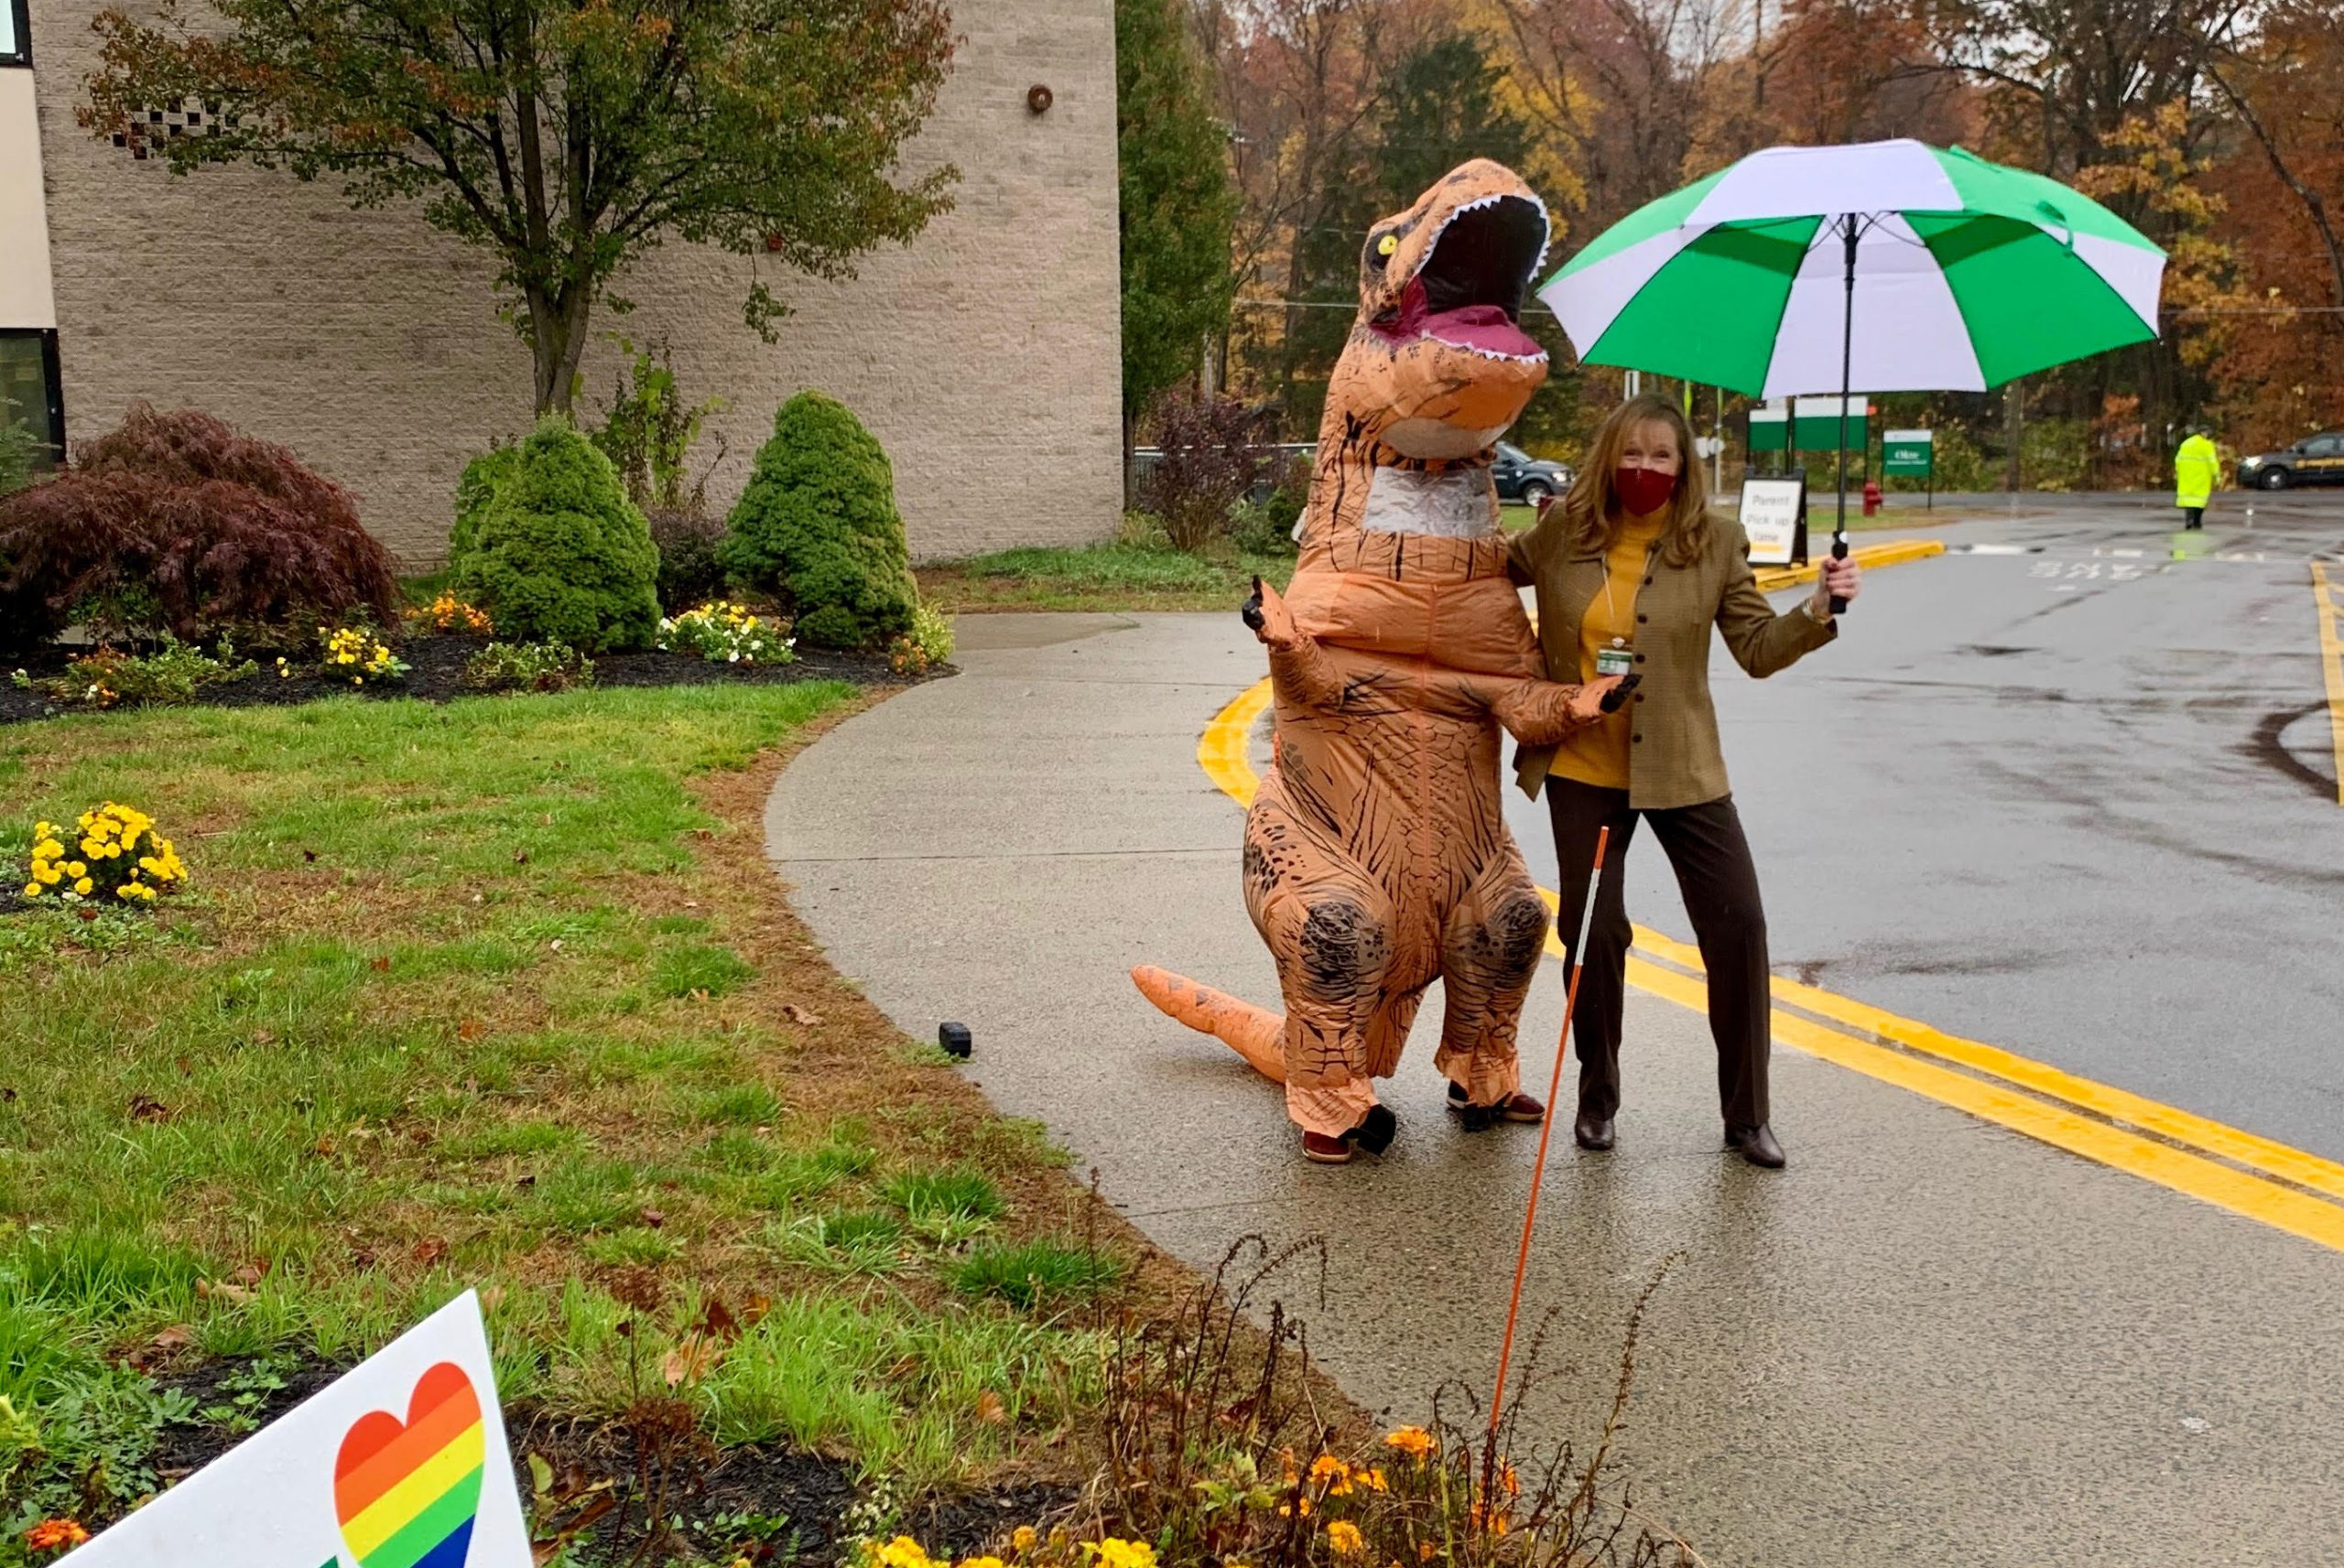 A Dancing Dinosaur greets Principal Strangis at Okte to brighten a rainy day! The kids loved dancing their way into school!